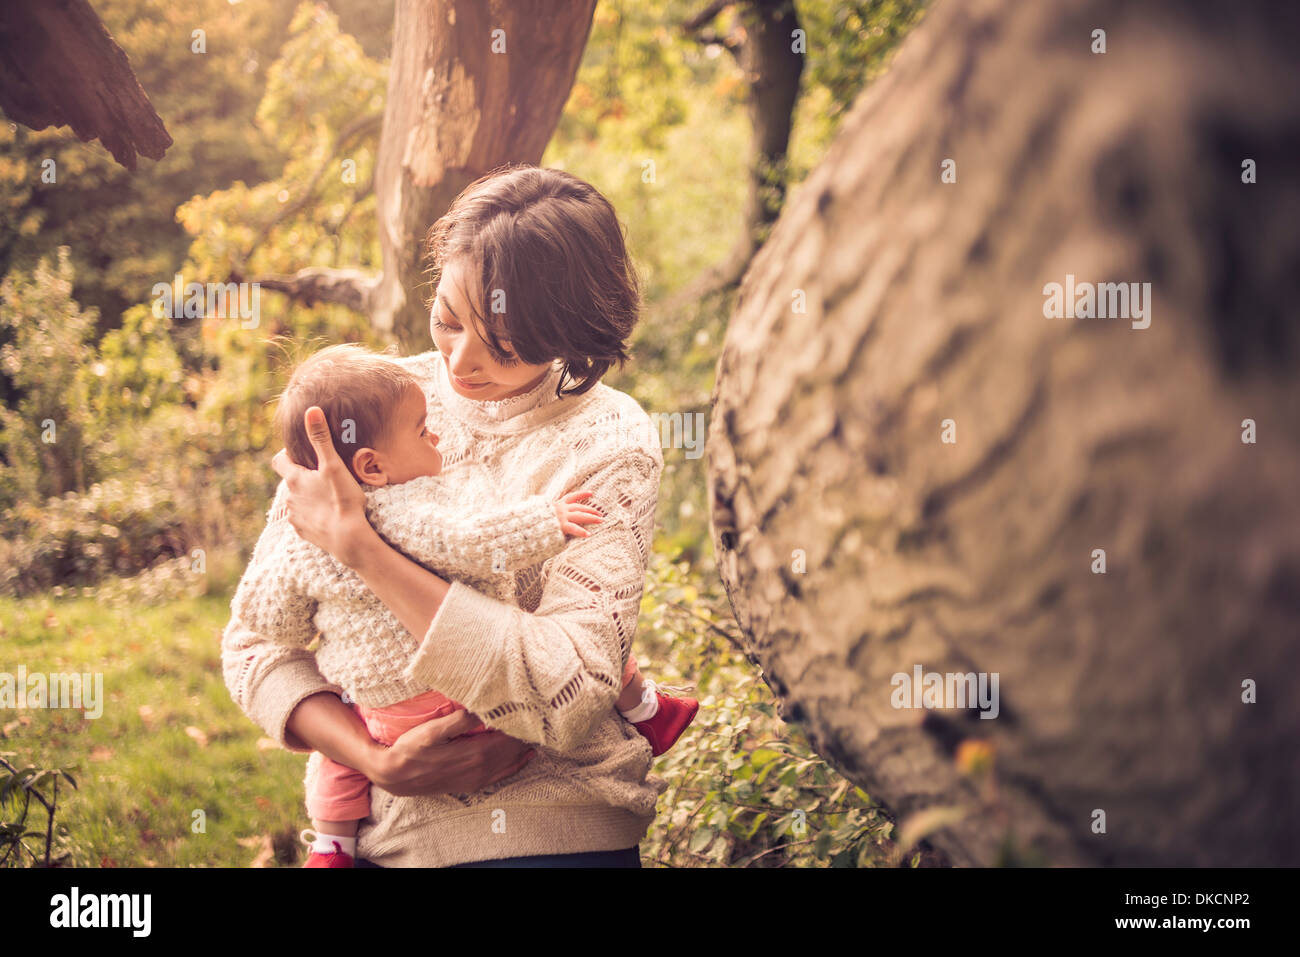 Mother and baby enjoying park Stock Photo